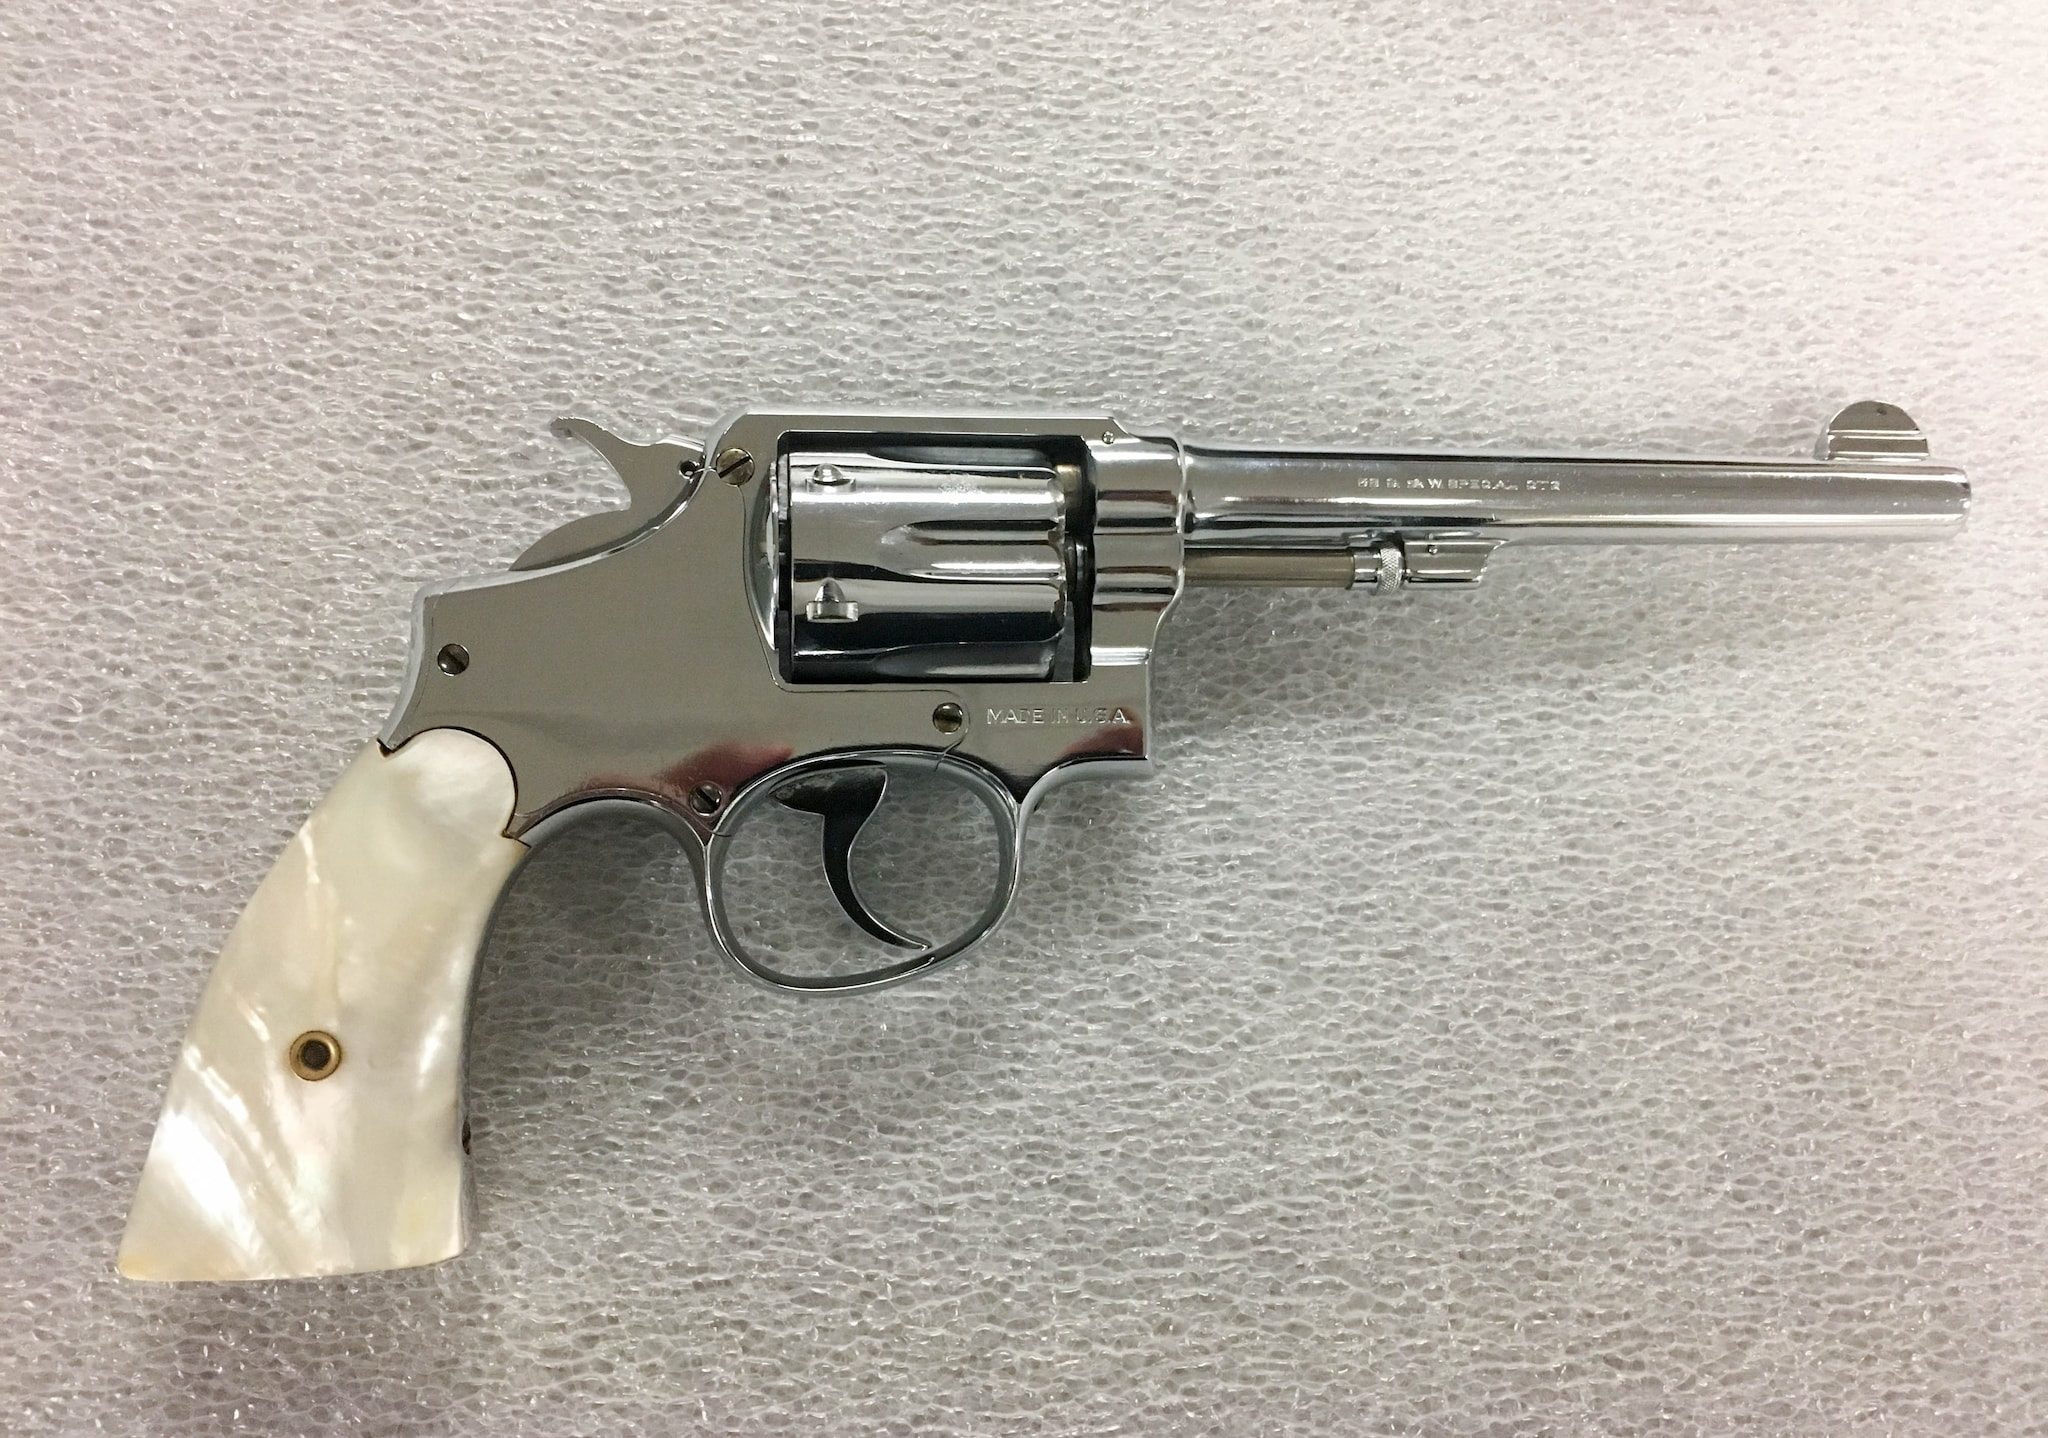 The 1925 Smith & Wesson .38-caliber pearl handed revolver confiscated from Al Capone during an arrest in 1928.